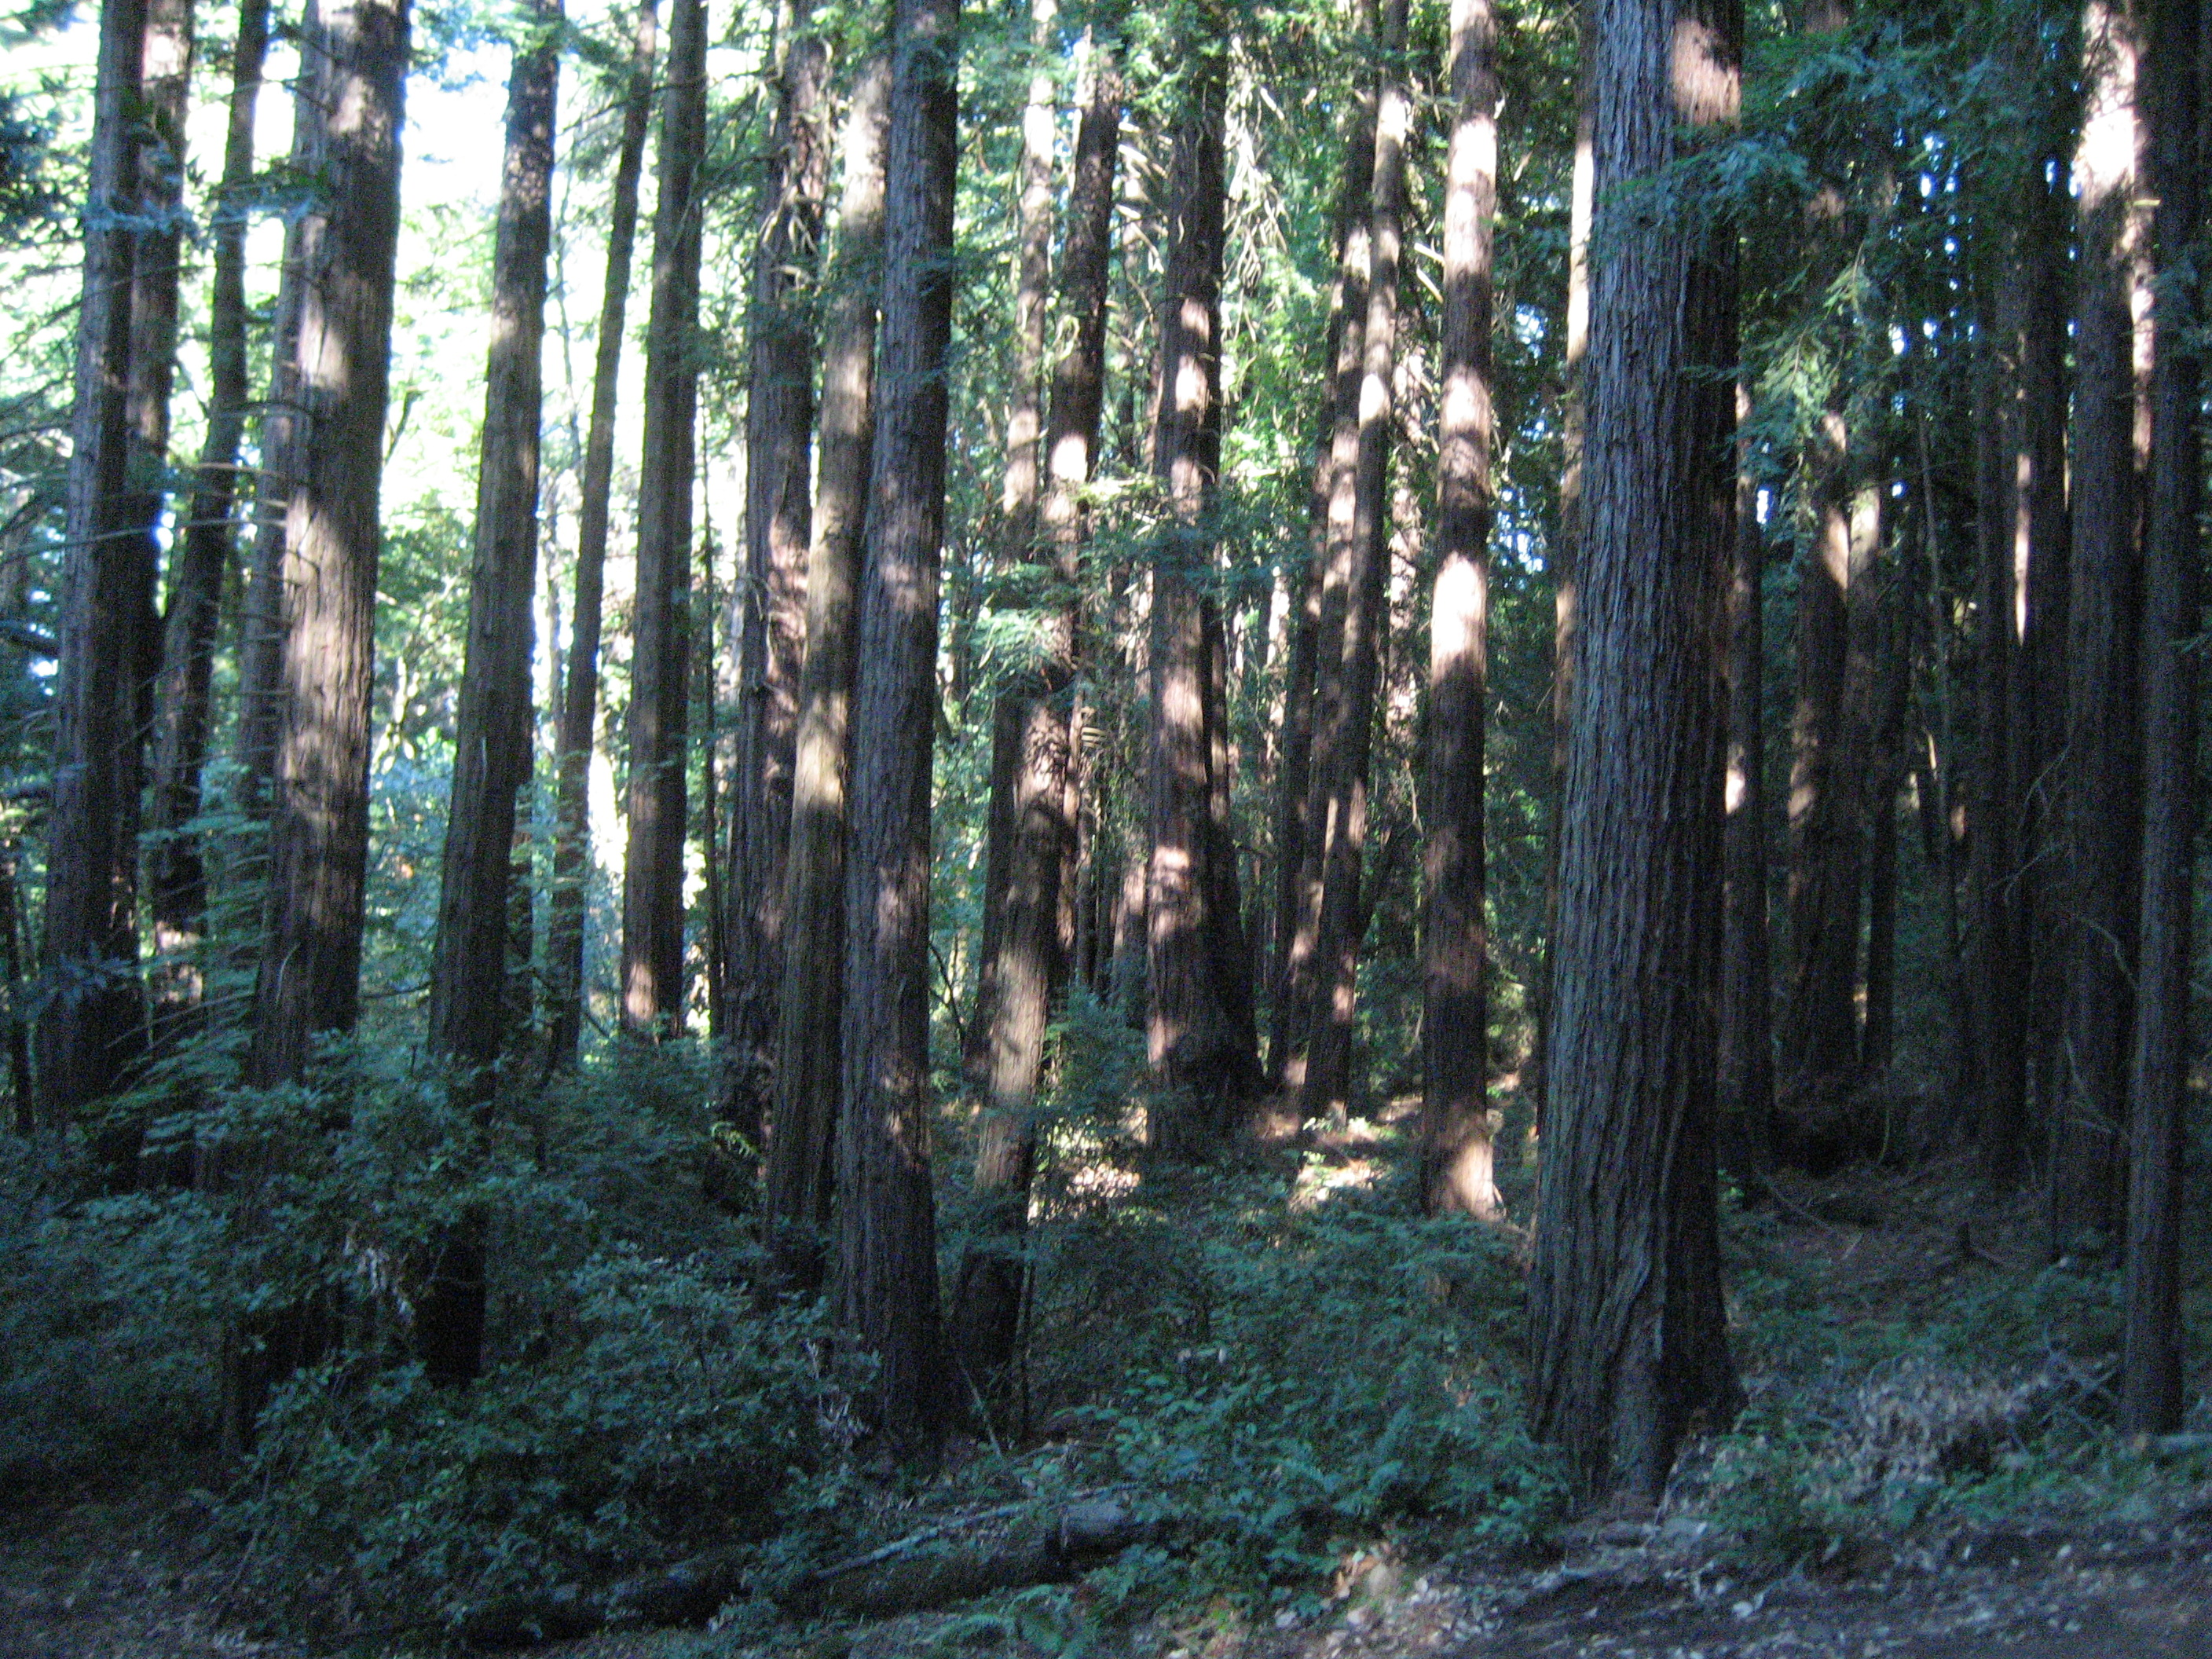 Redwood Trees in Jack London State Park in Sonoma Valley